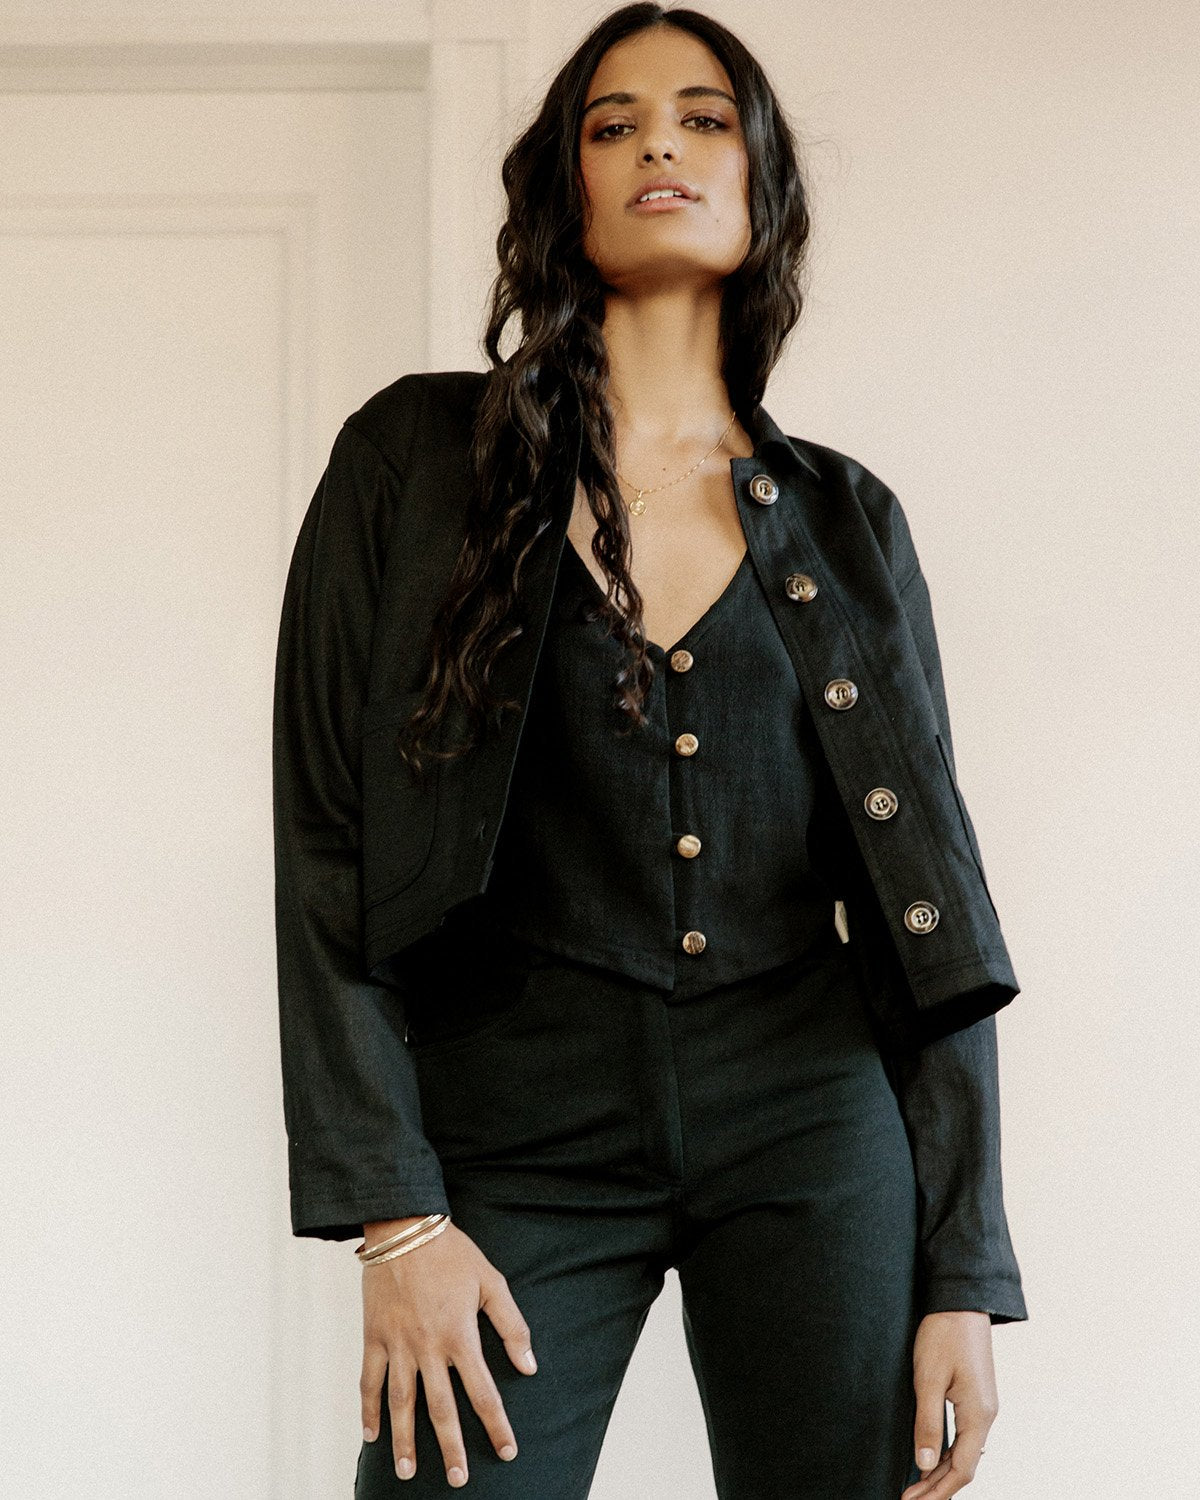 the pierrot jacket in black by harly jae is a cropped denim jacket made ethically in Vancouver, BC